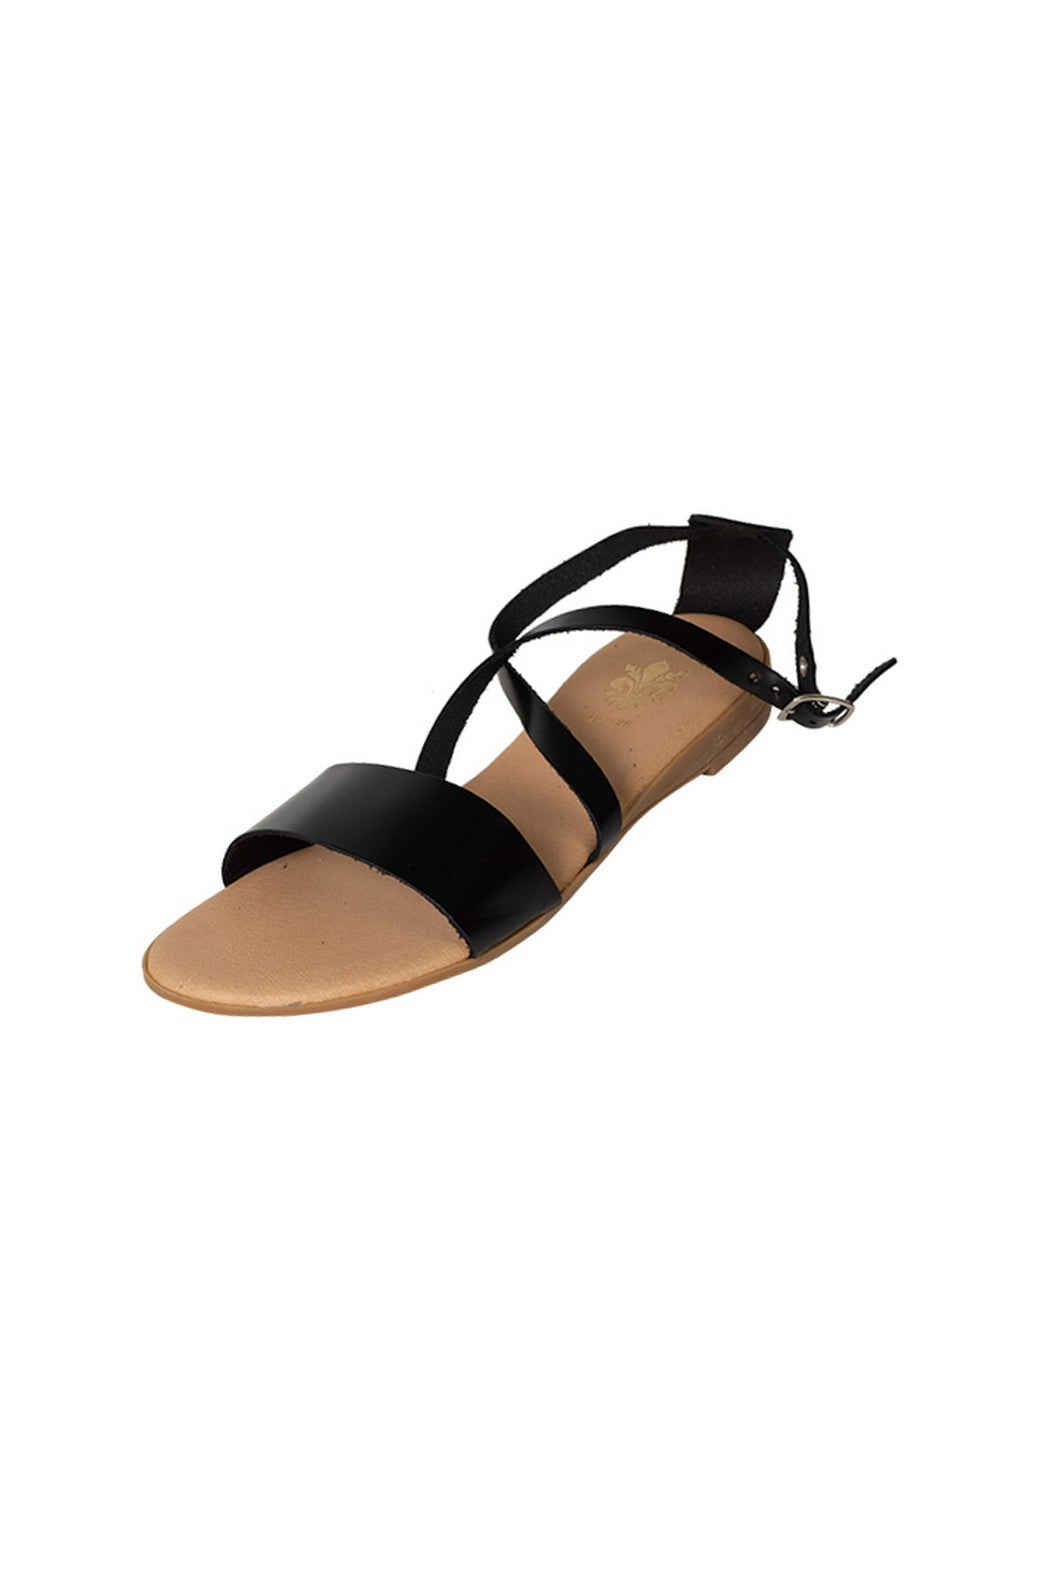 casual black leather flat sandal cross over strap